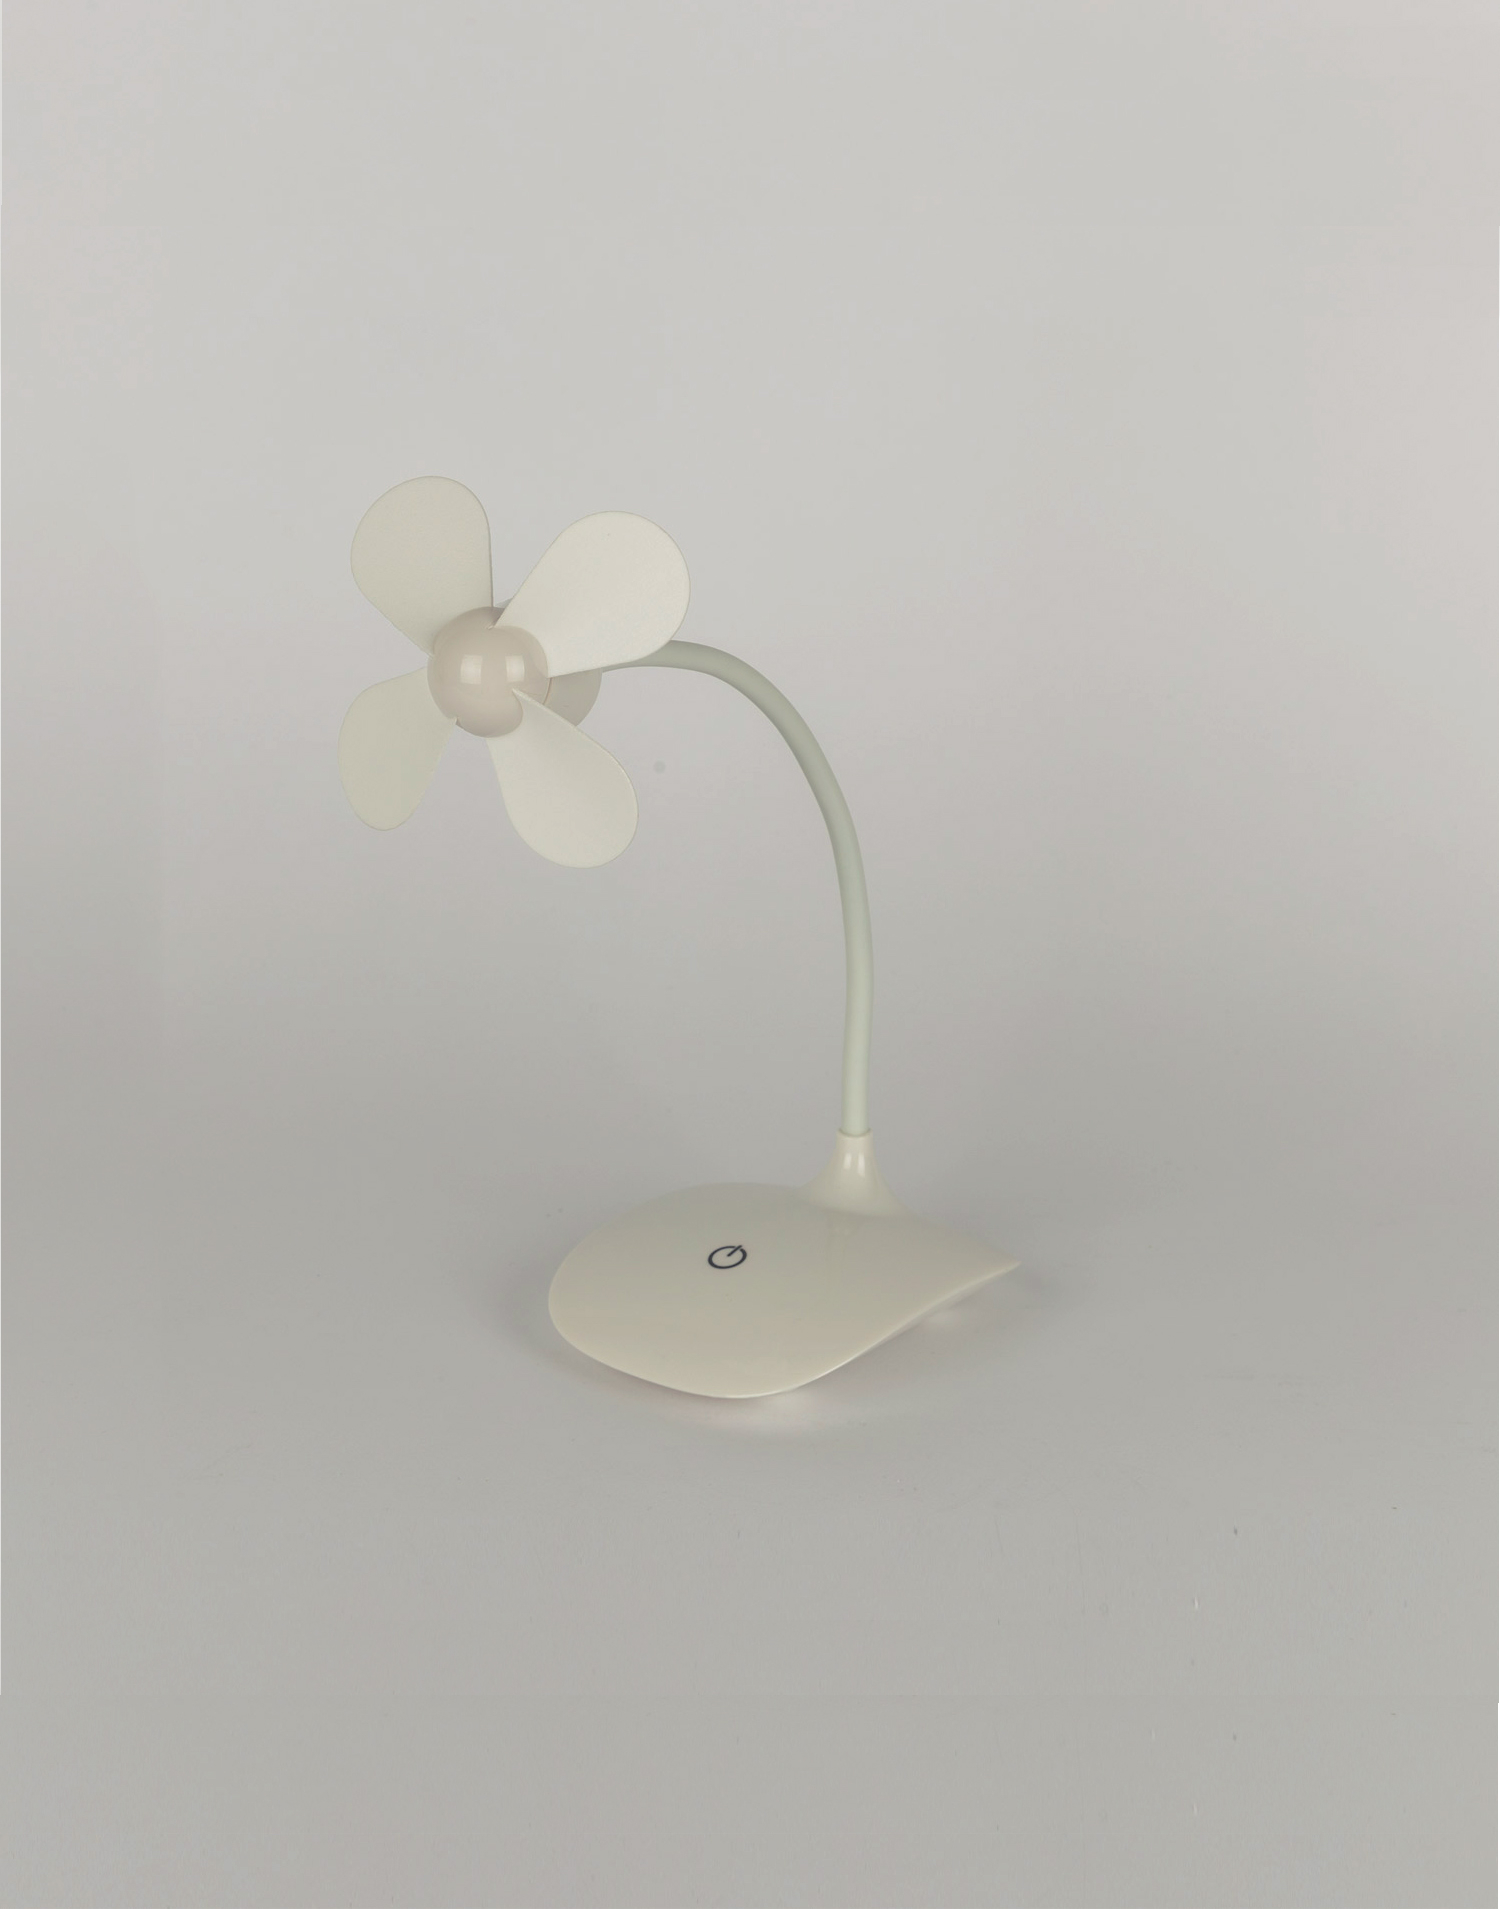 Tactile desktop fan